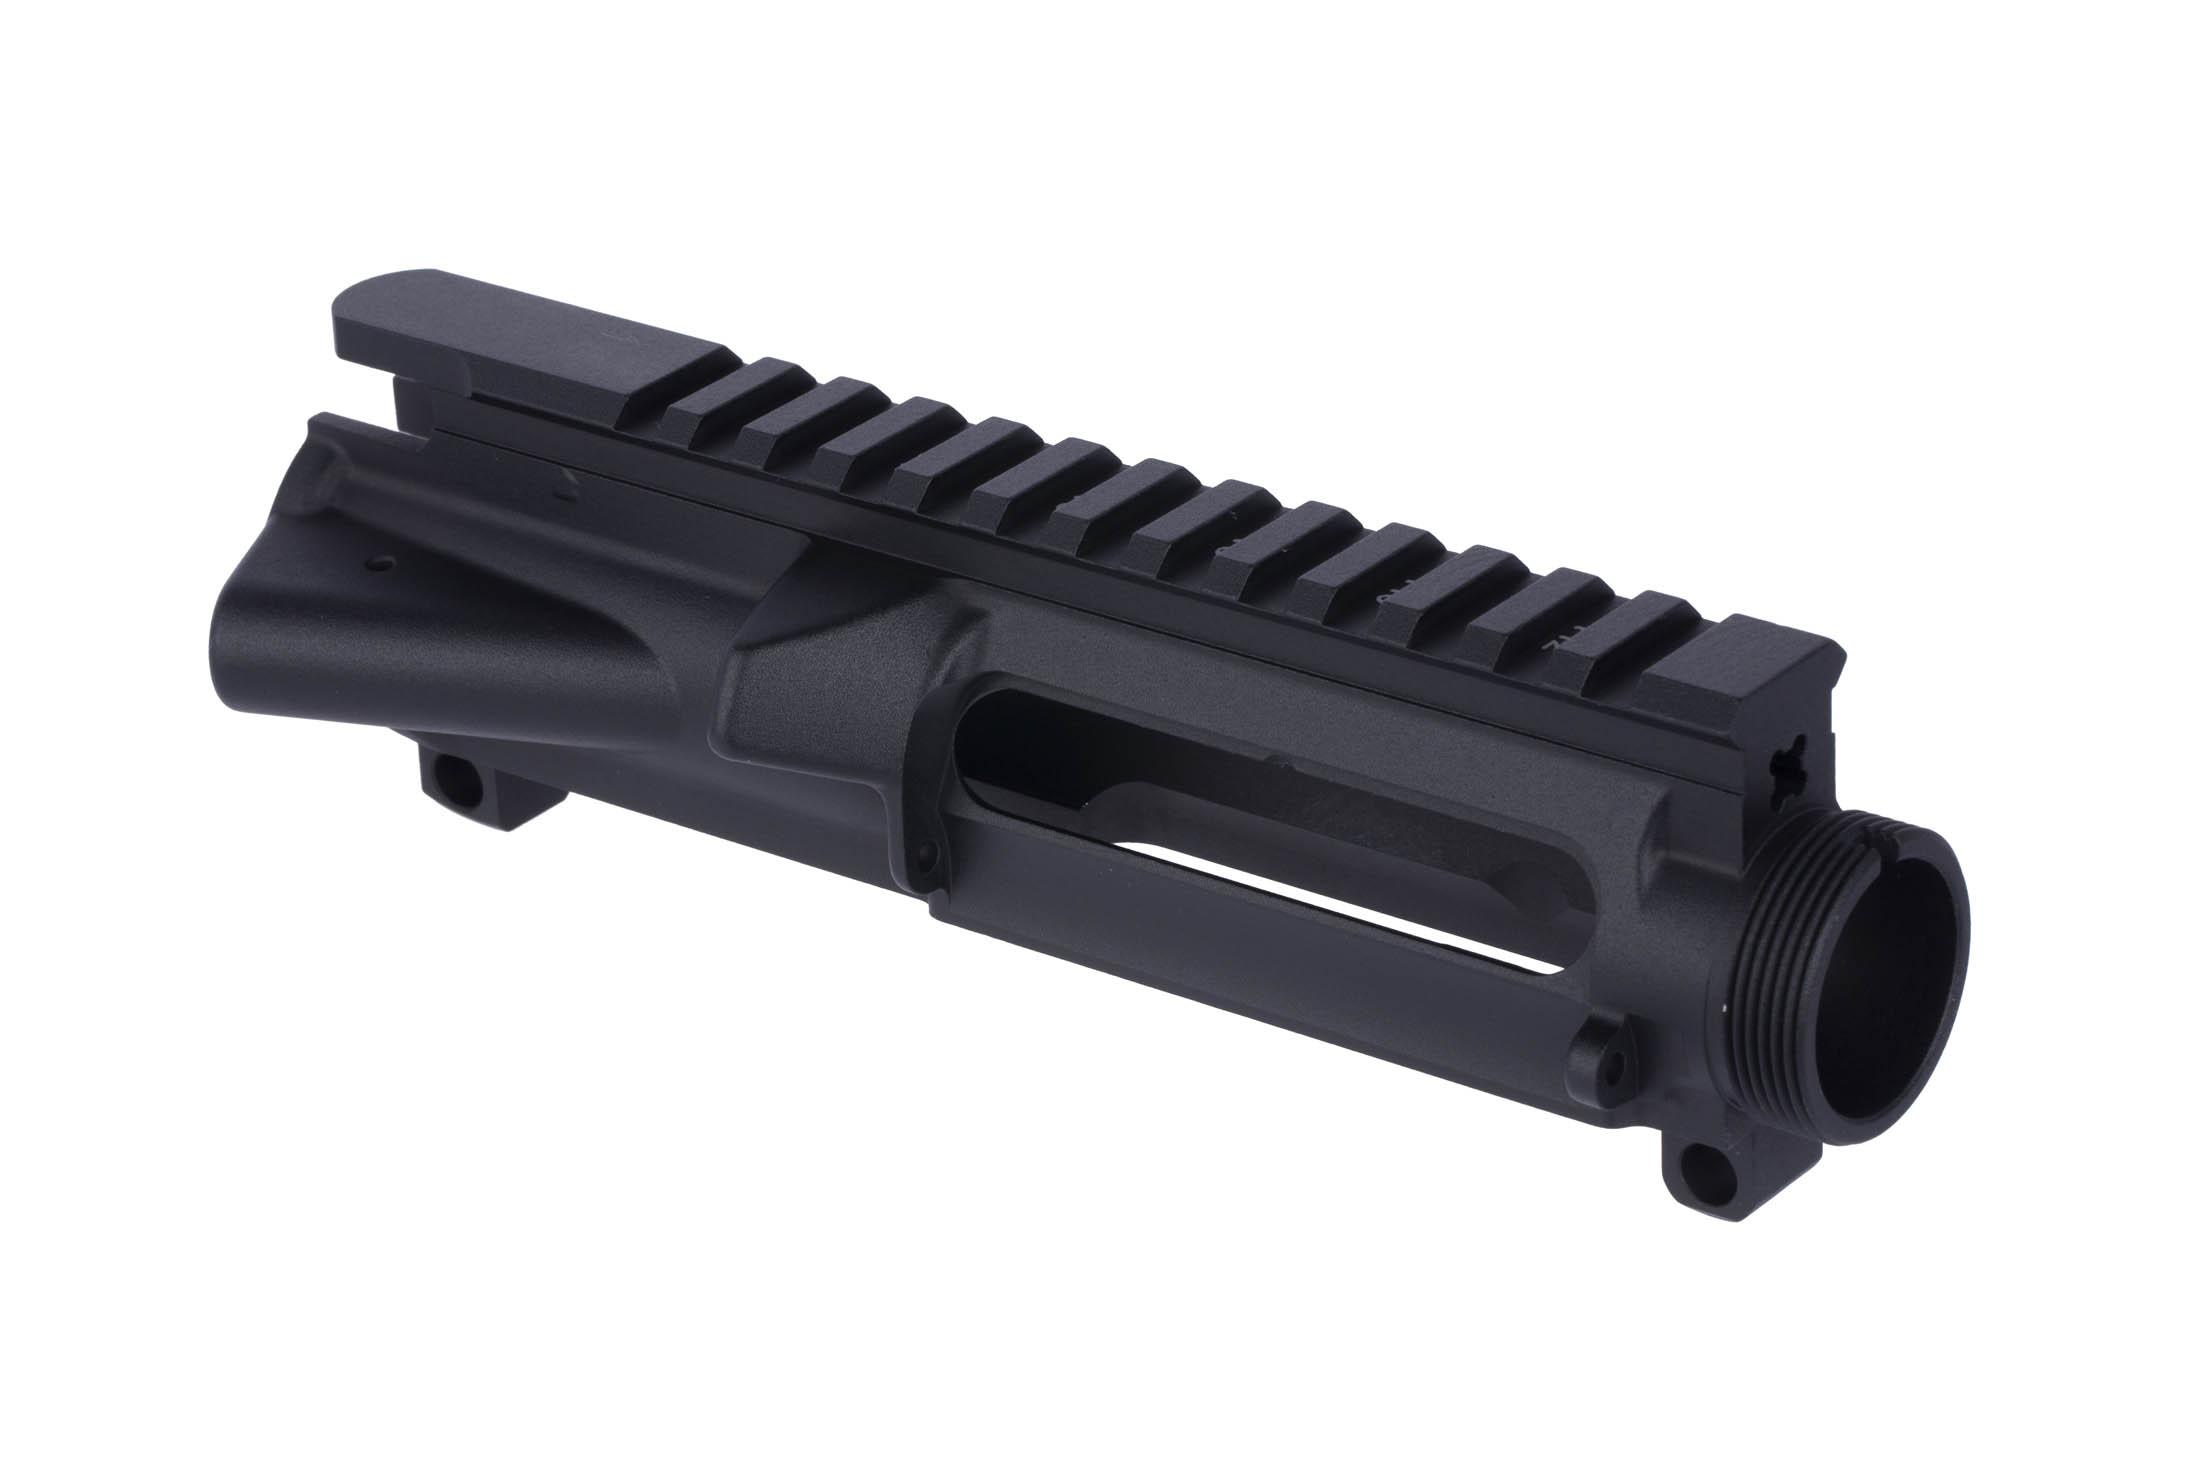 The Expo Arms AR-15 stripped upper receiver is ready to accept a standard port door and forward assist